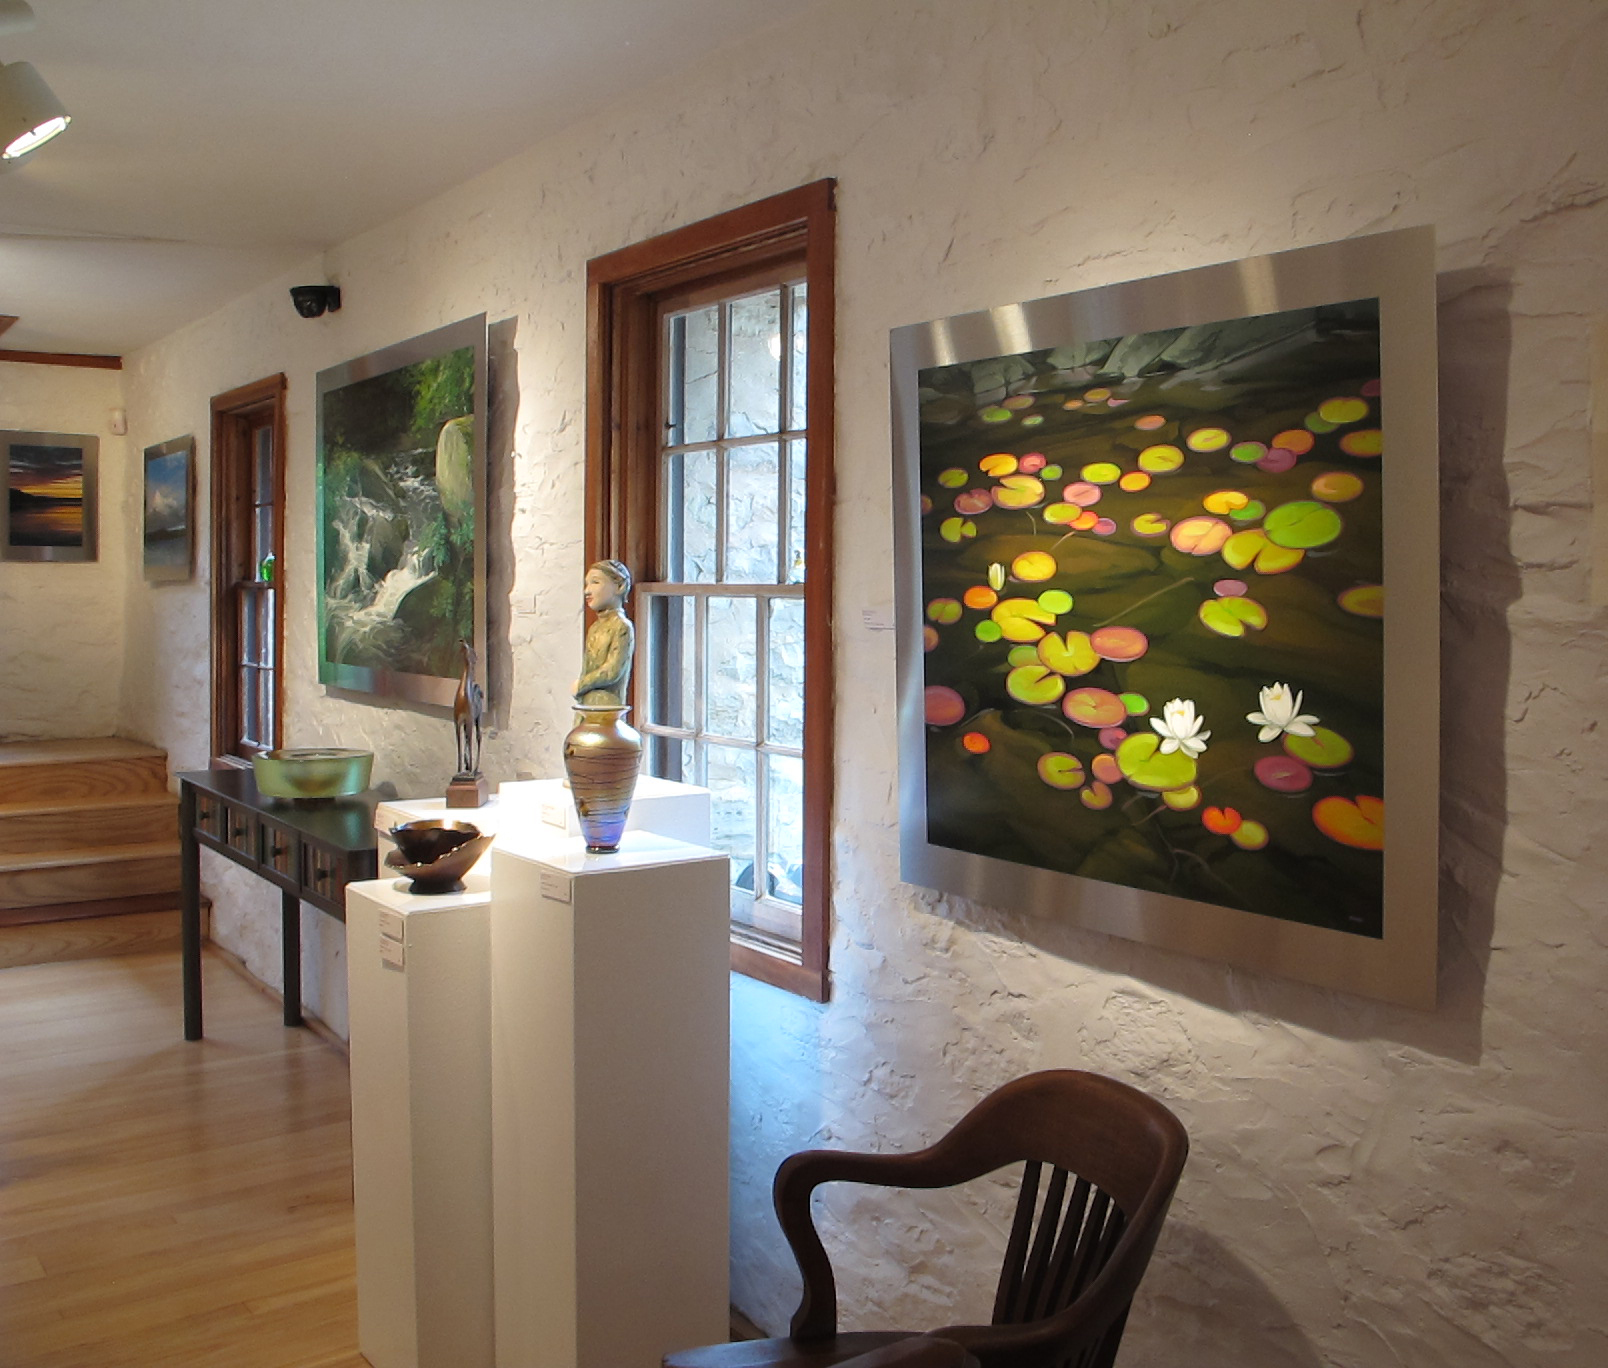 Installation view at Edgewood Orchard Galleries, Fish Creek, WI